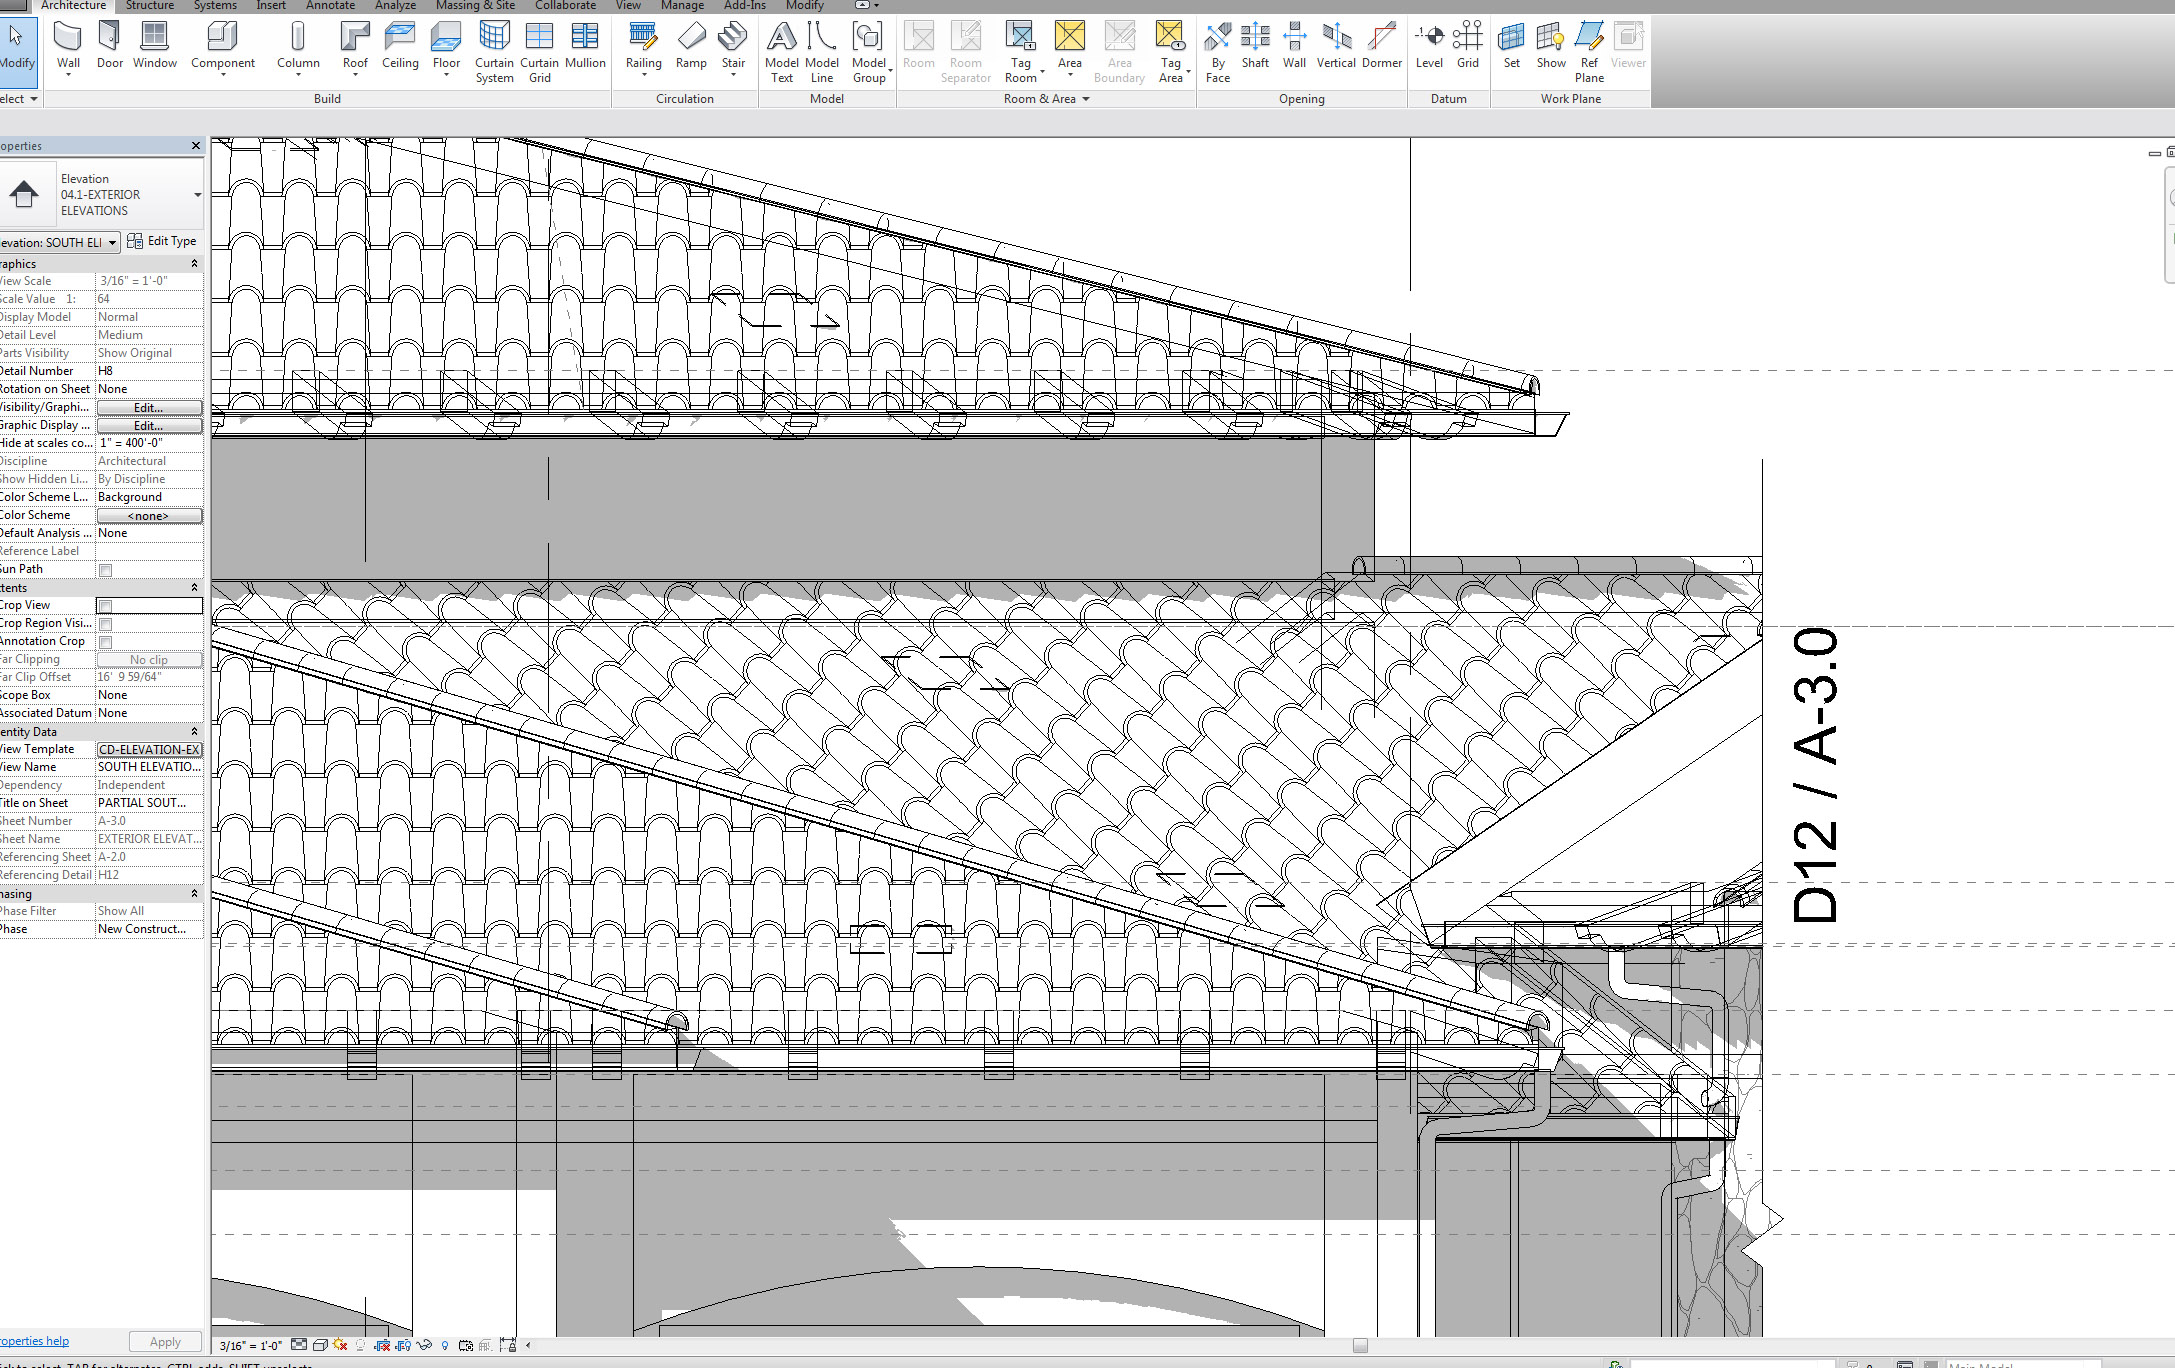 Graphics Issue With Revit Roof Goes To Wf Mode When Uncropping View Autodesk Community Revit Products